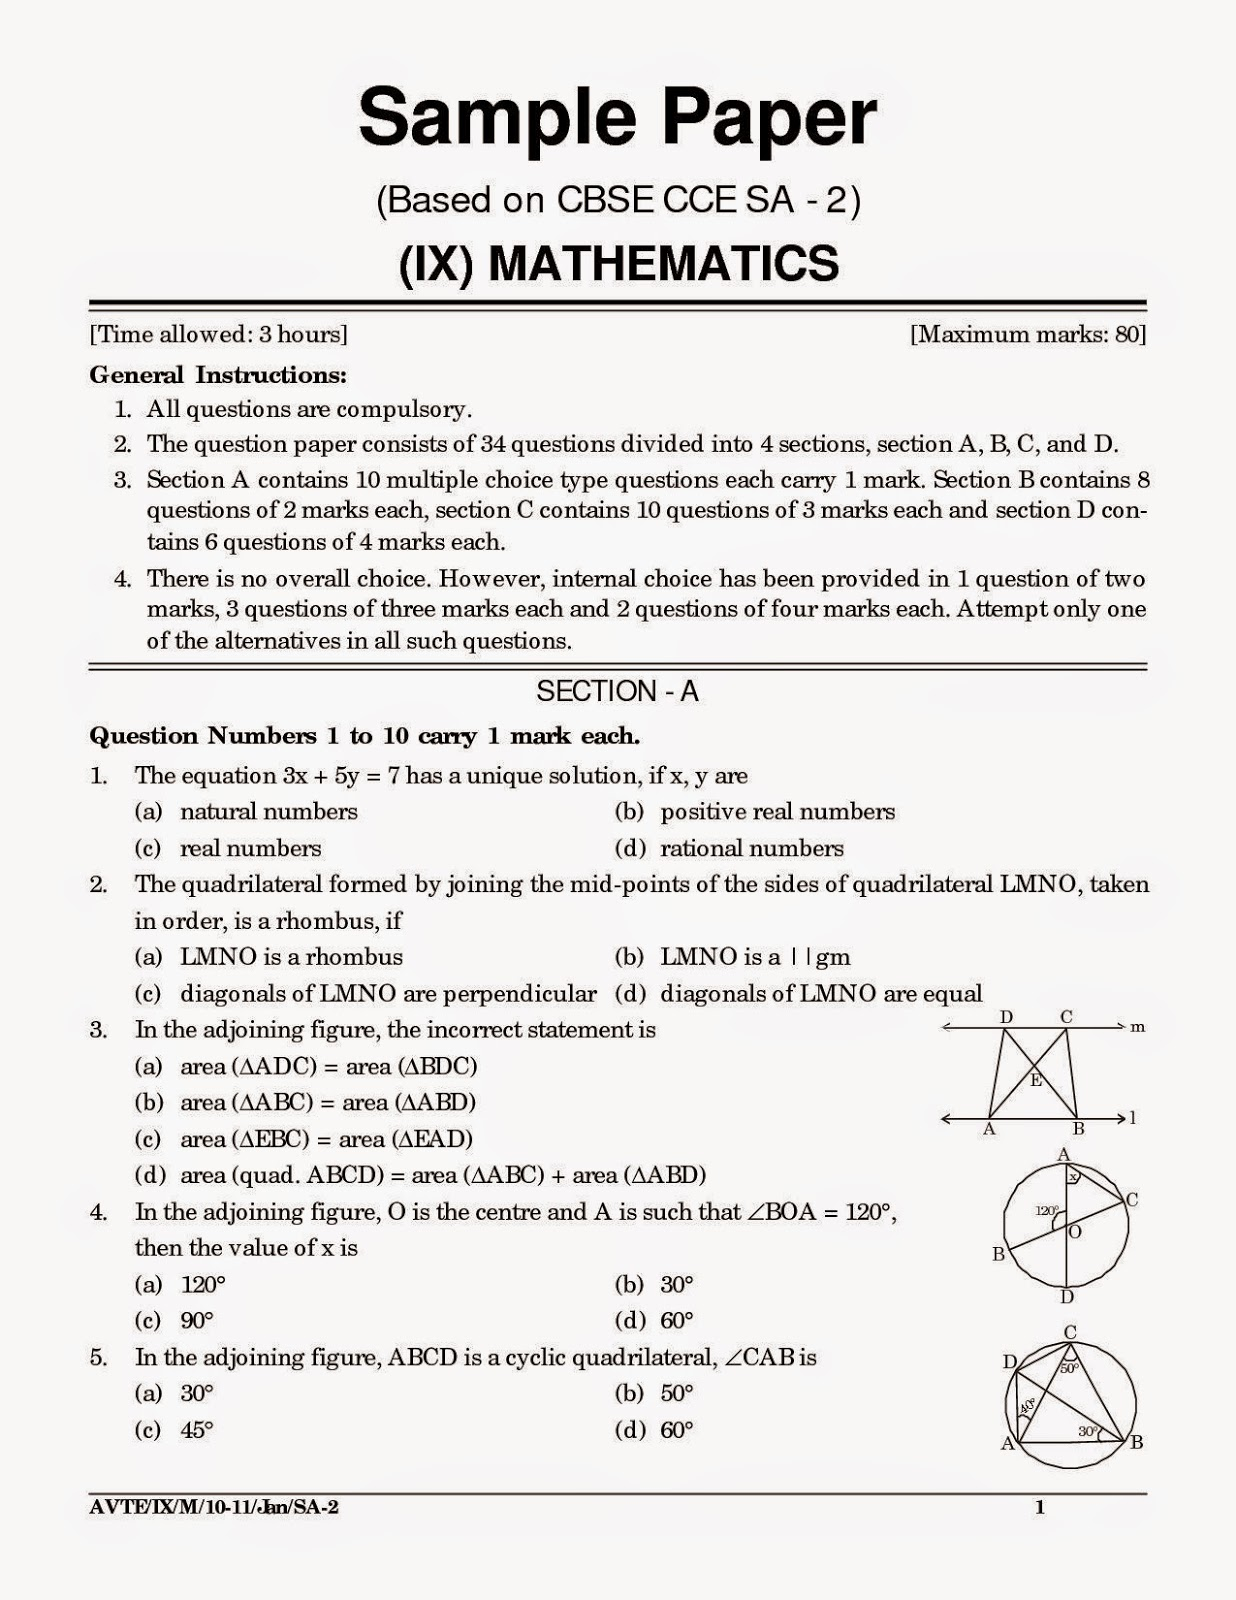 019 Sample Argumentative Essay Cbse20sample20papers20for20class201020mathematics20and20science Jpg Awful Outline Middle School Apa Format Ap Argument Prompts Full